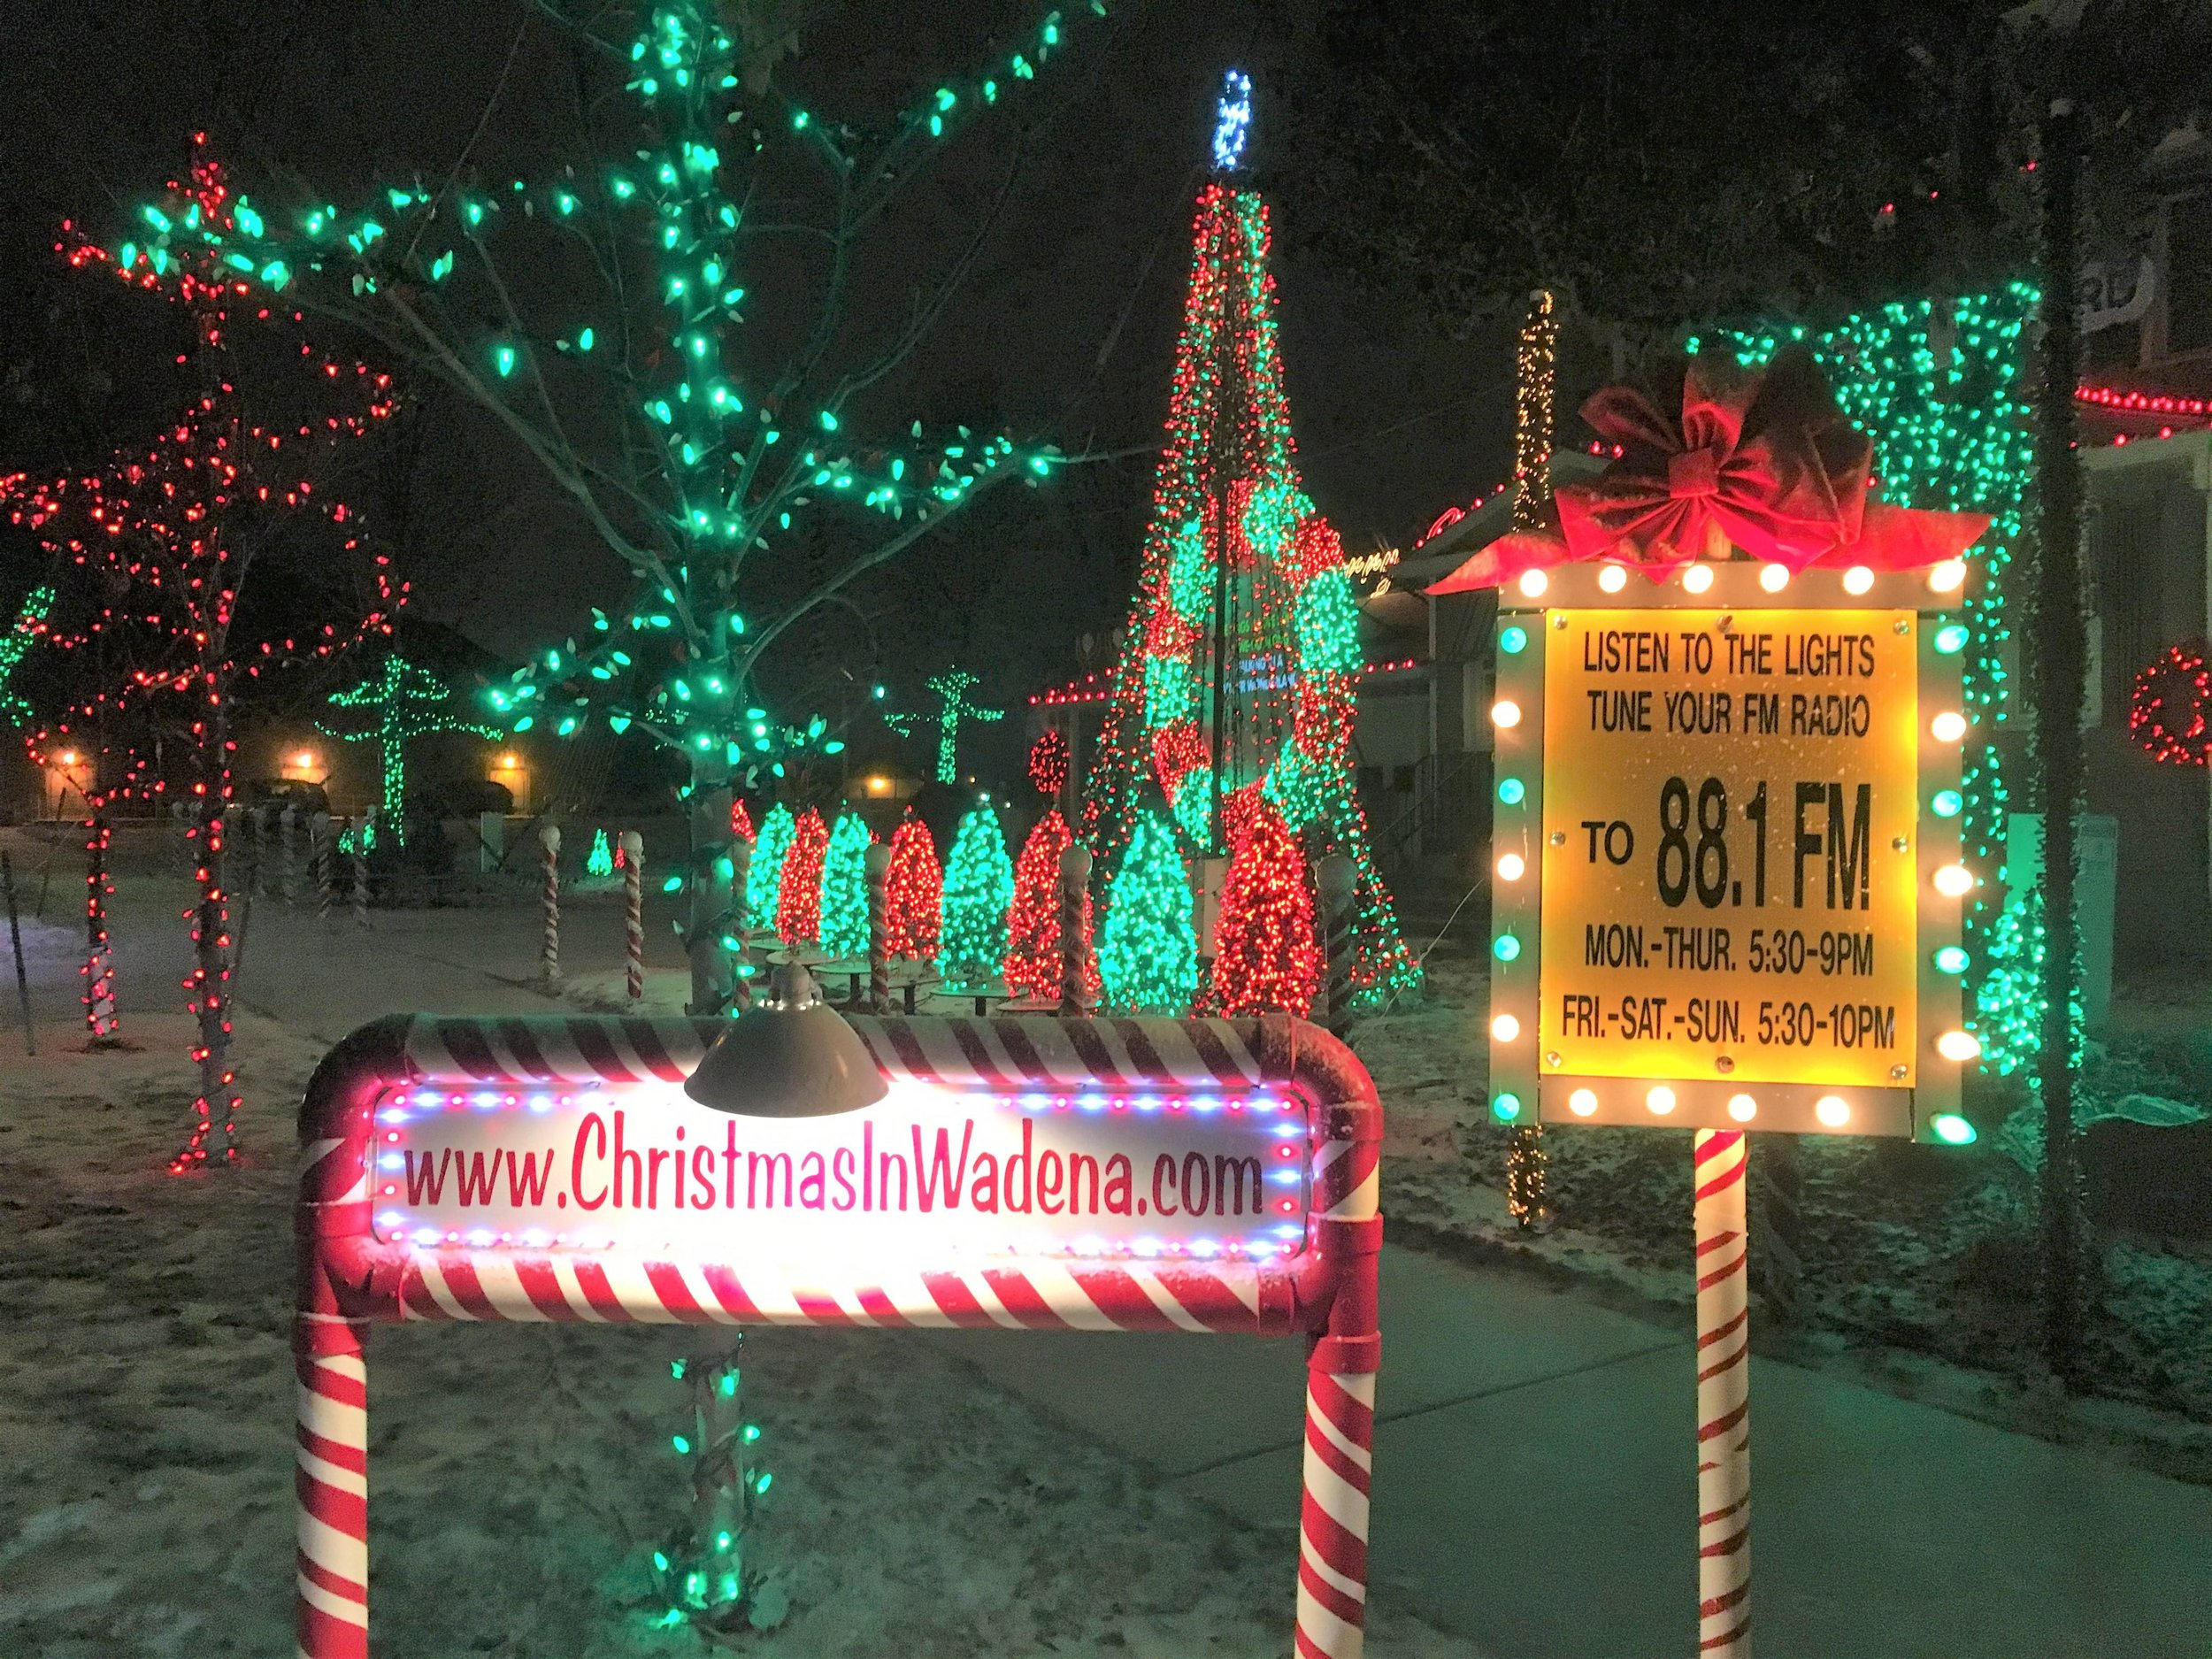 """The """"Christmas in Wadena"""" show is on display next to the Wadena-Deer Creek School at the home of GP Anderson each year during the weeks prior to and after Christmas. Michael Johnson/Pioneer Journal"""